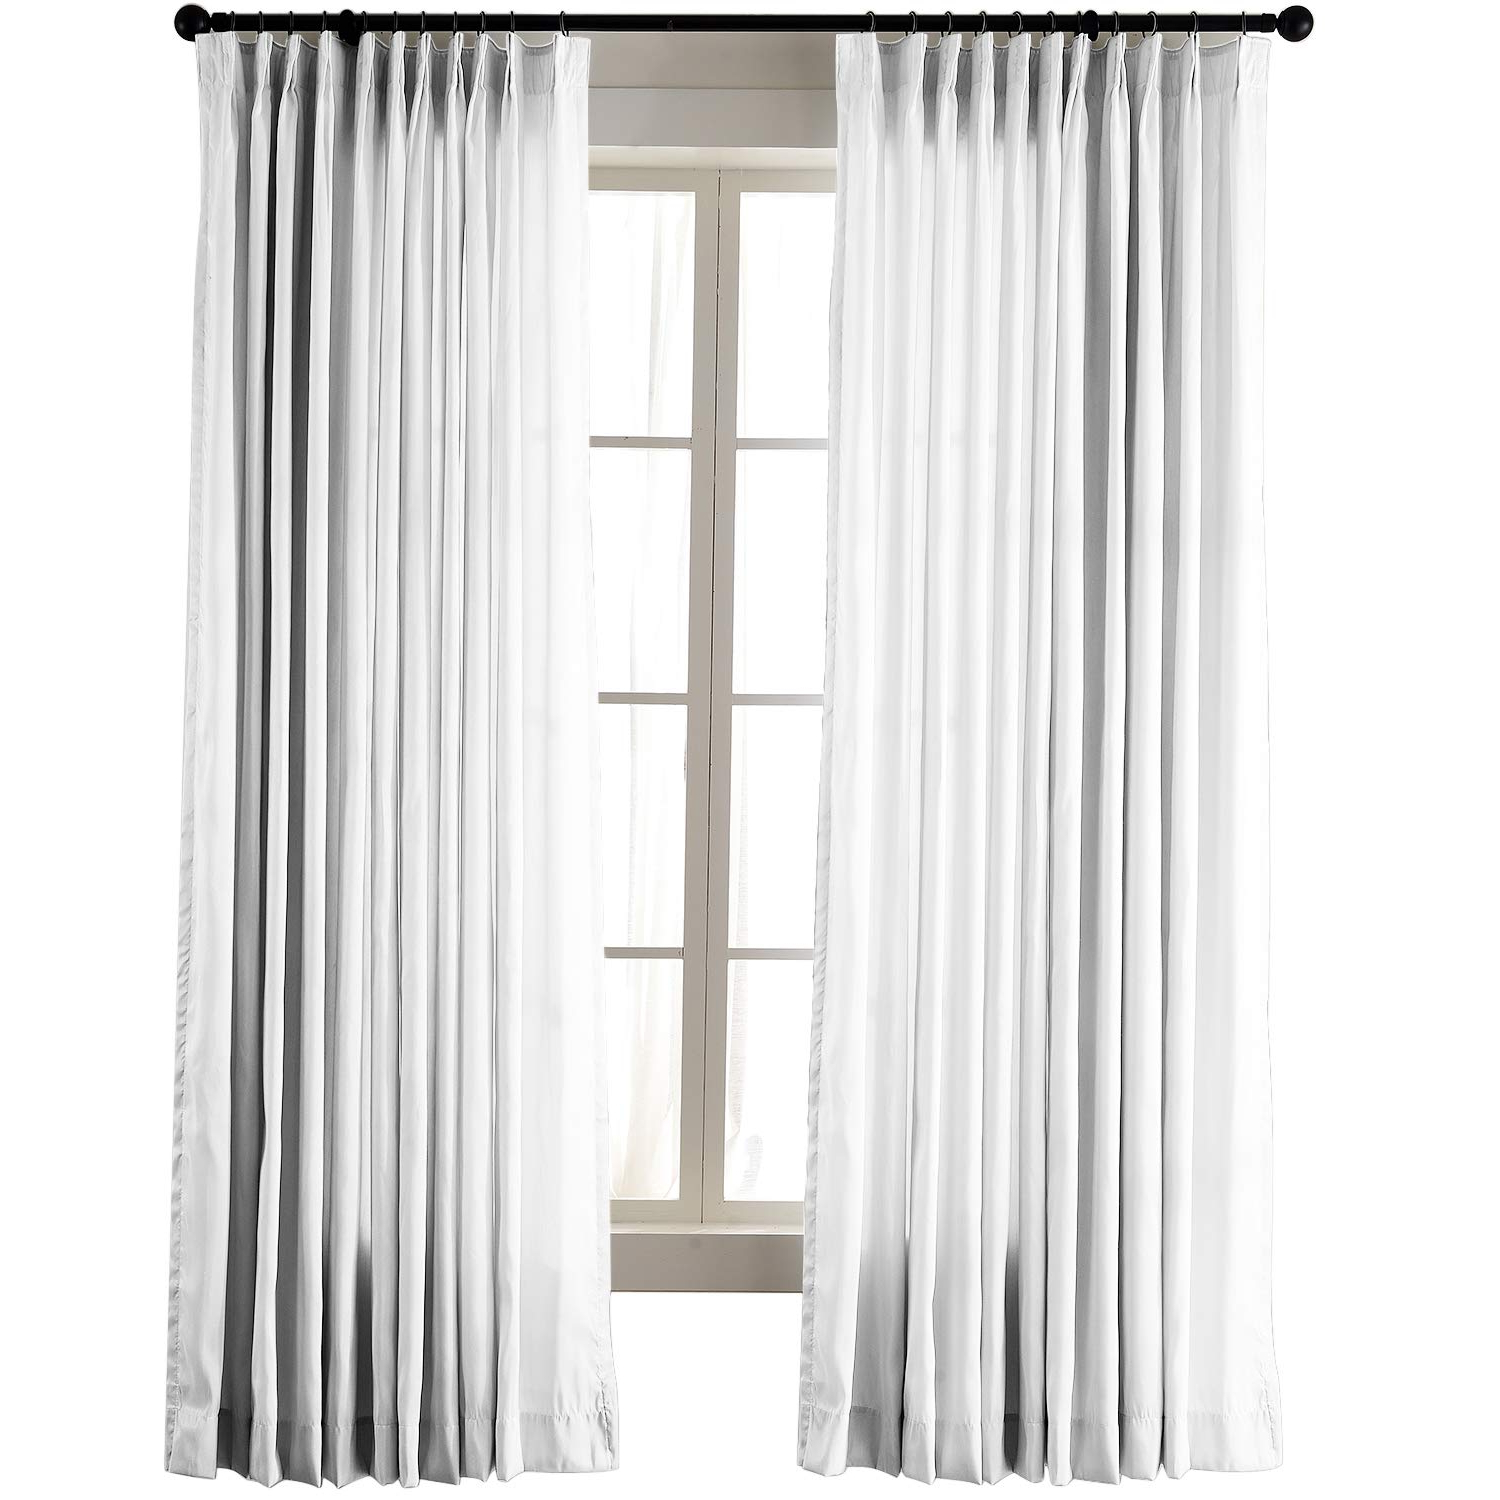 "Flax Gold Vintage Faux Textured Silk Single Curtain Panels Throughout Favorite Chadmade Vintage Textured Faux Dupioni Silk Drape Curtain Panel Pinch Pleated 72"" W X 84"" L With White Blackout Lined, White Ivory (View 20 of 23)"